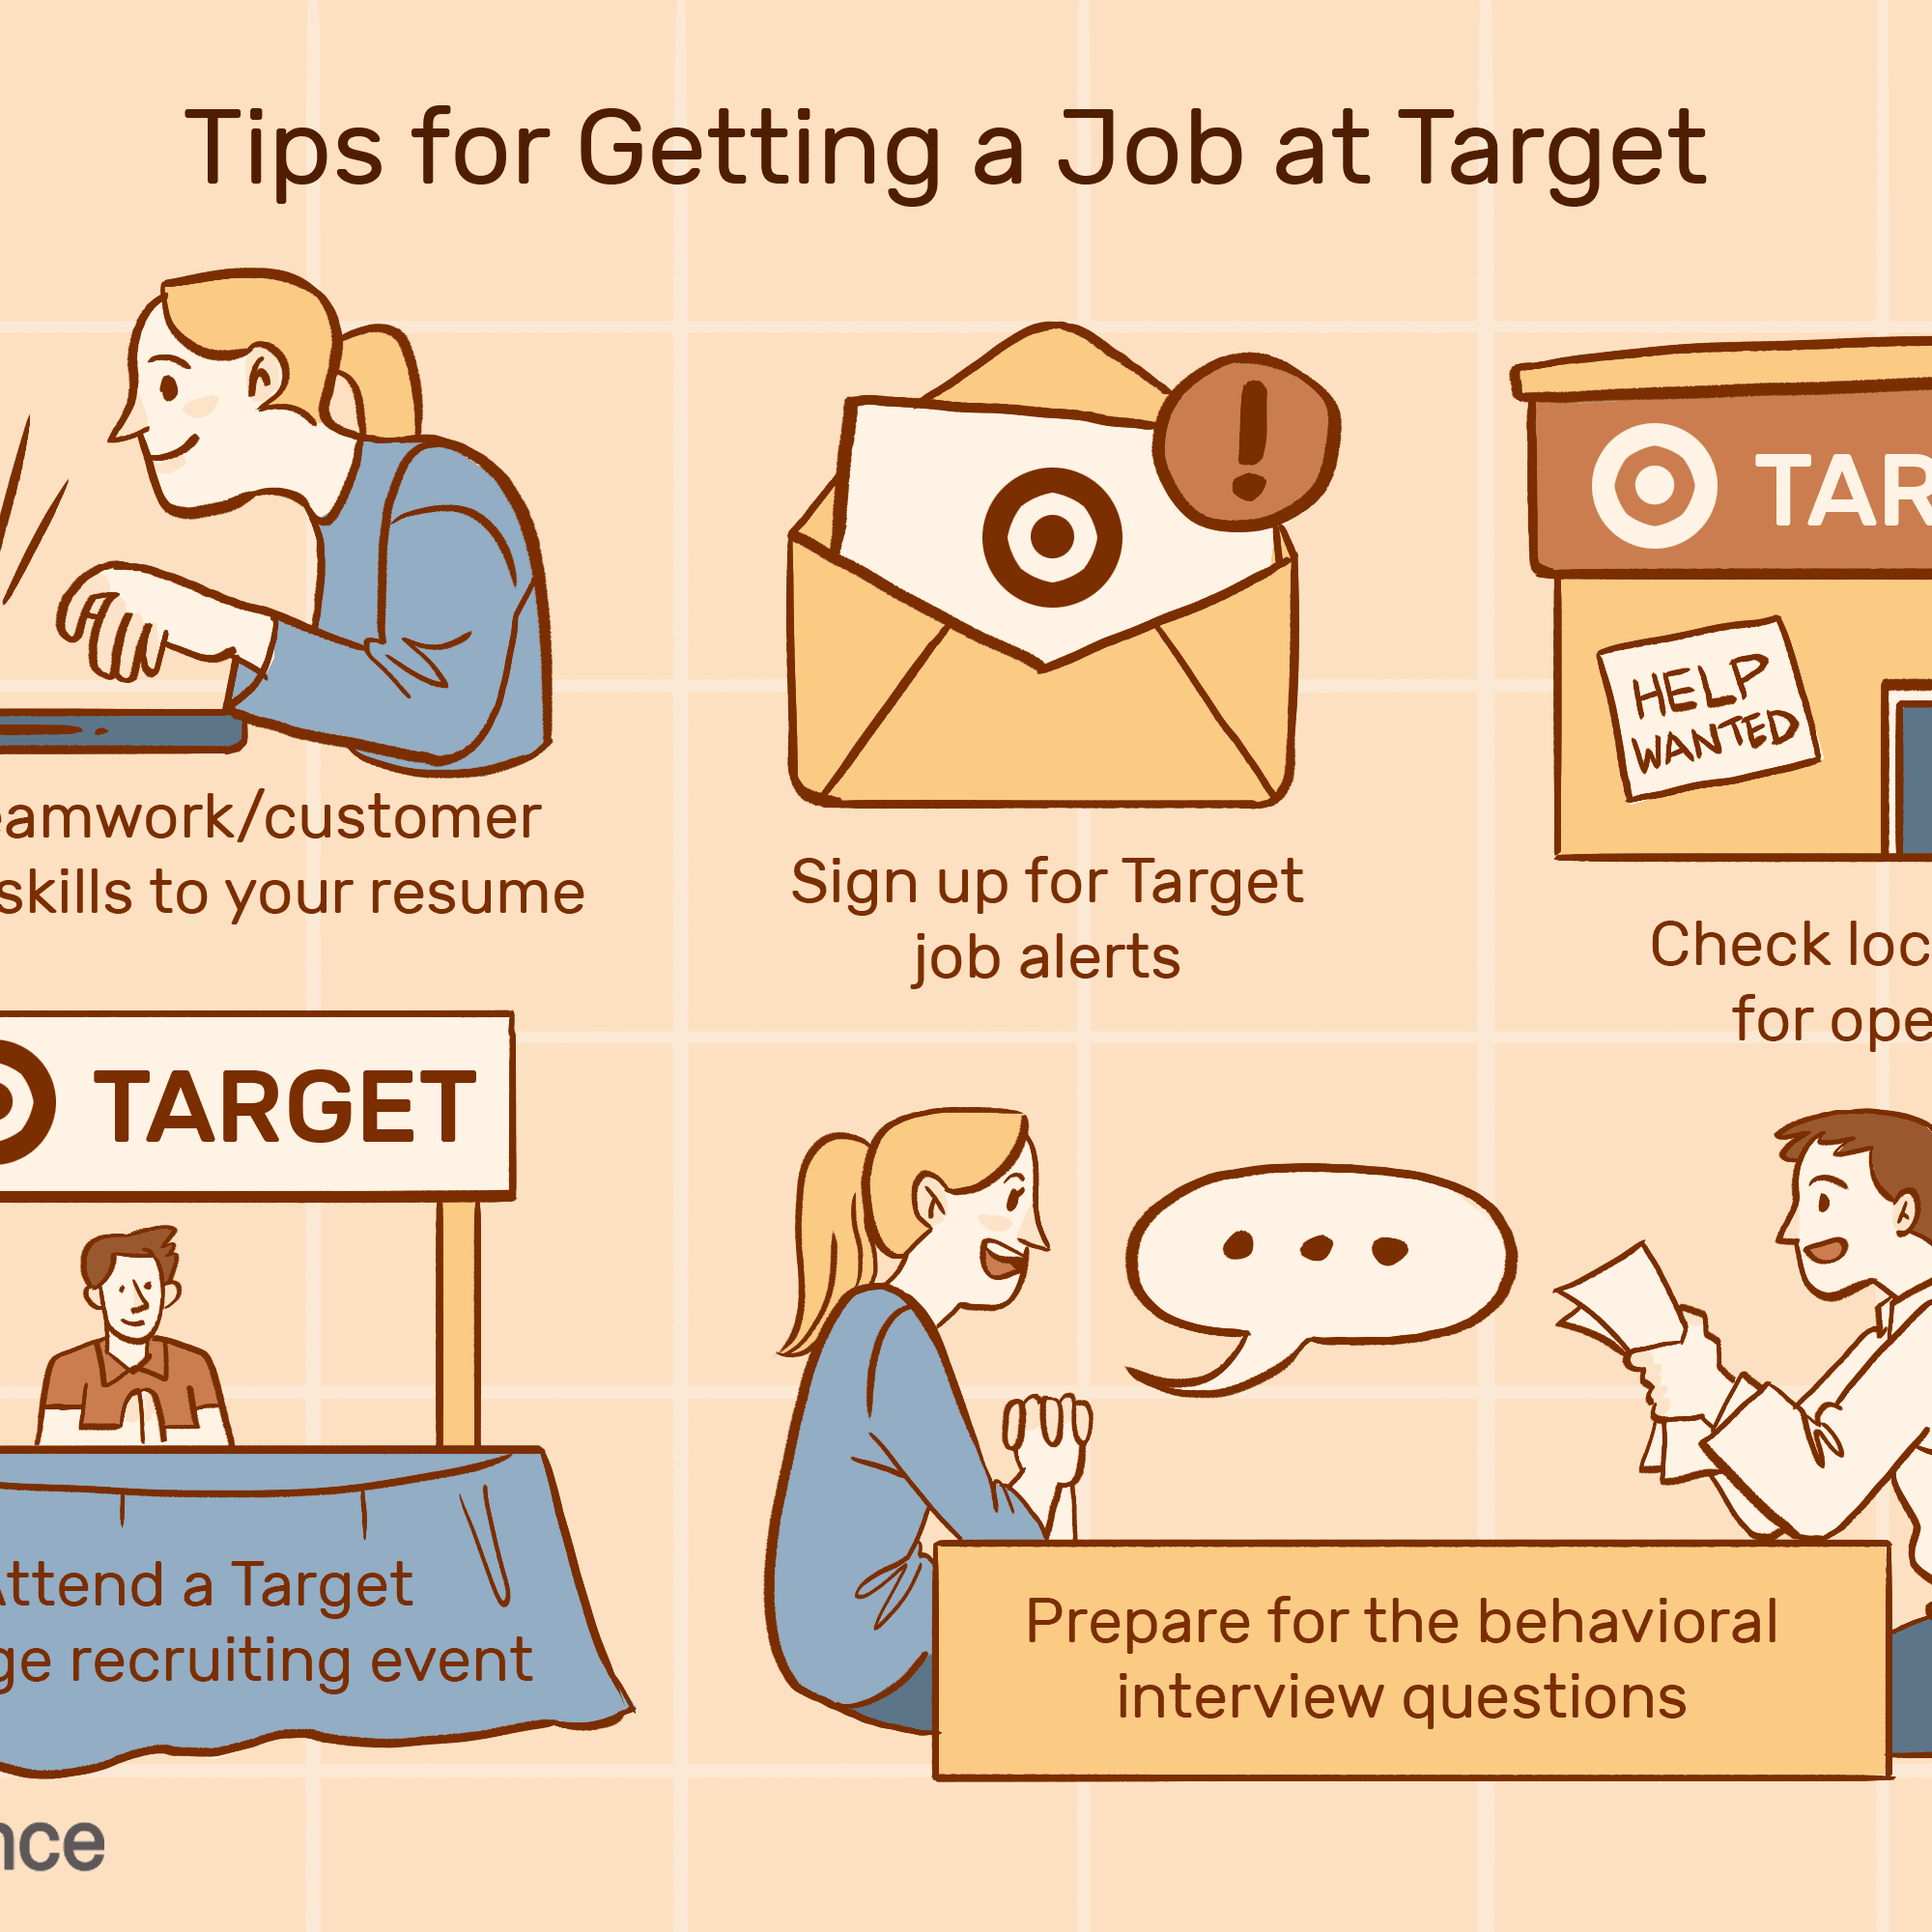 Tips for Applying for a Job at Target